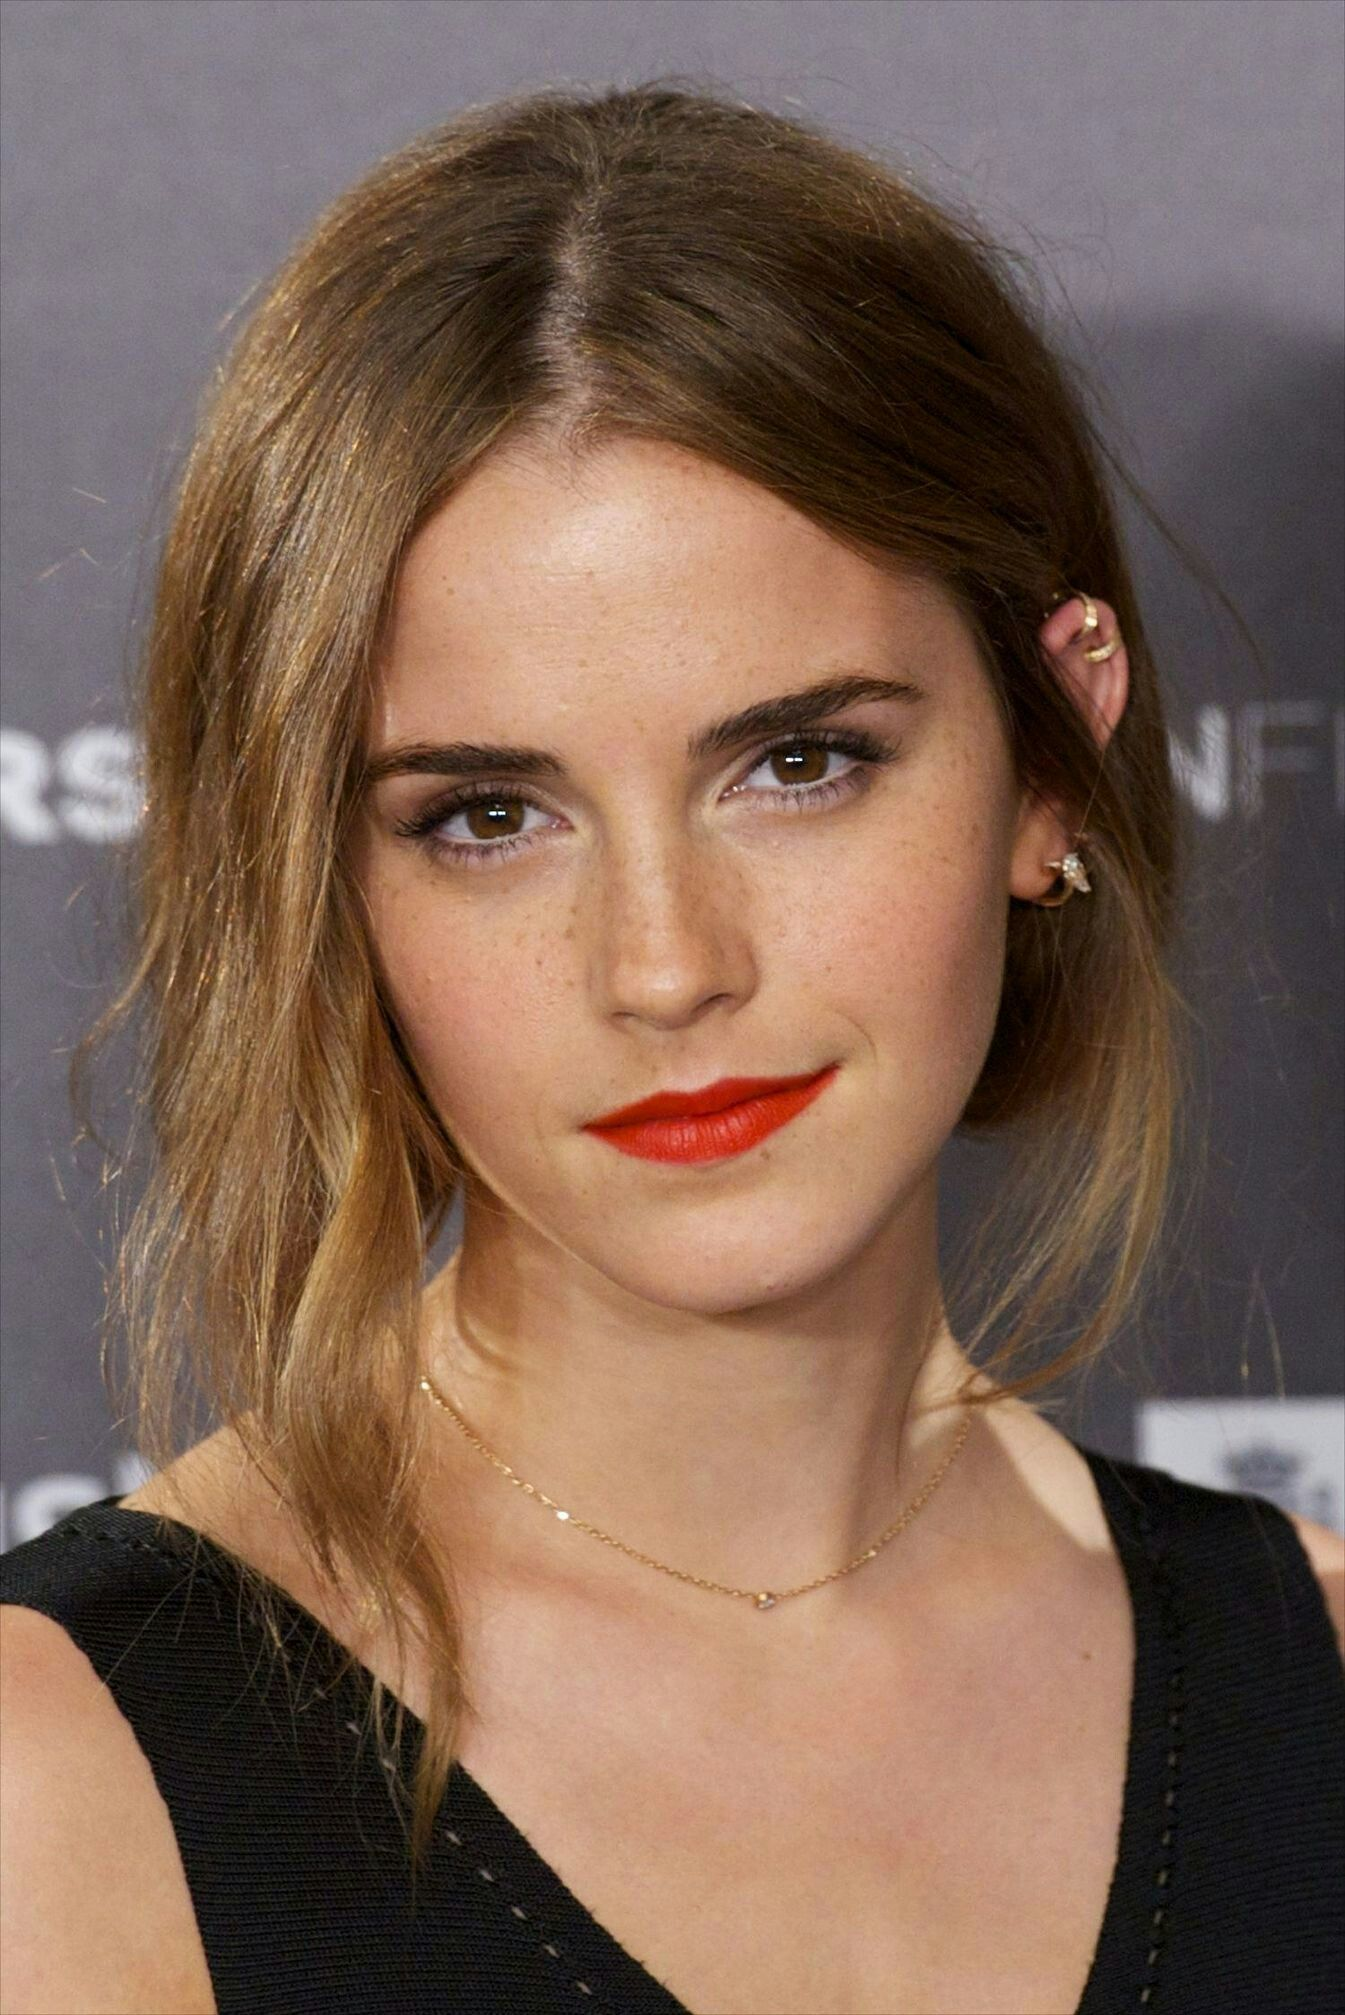 Pin by Gus Verdone on Emma Watson (With images) Emma